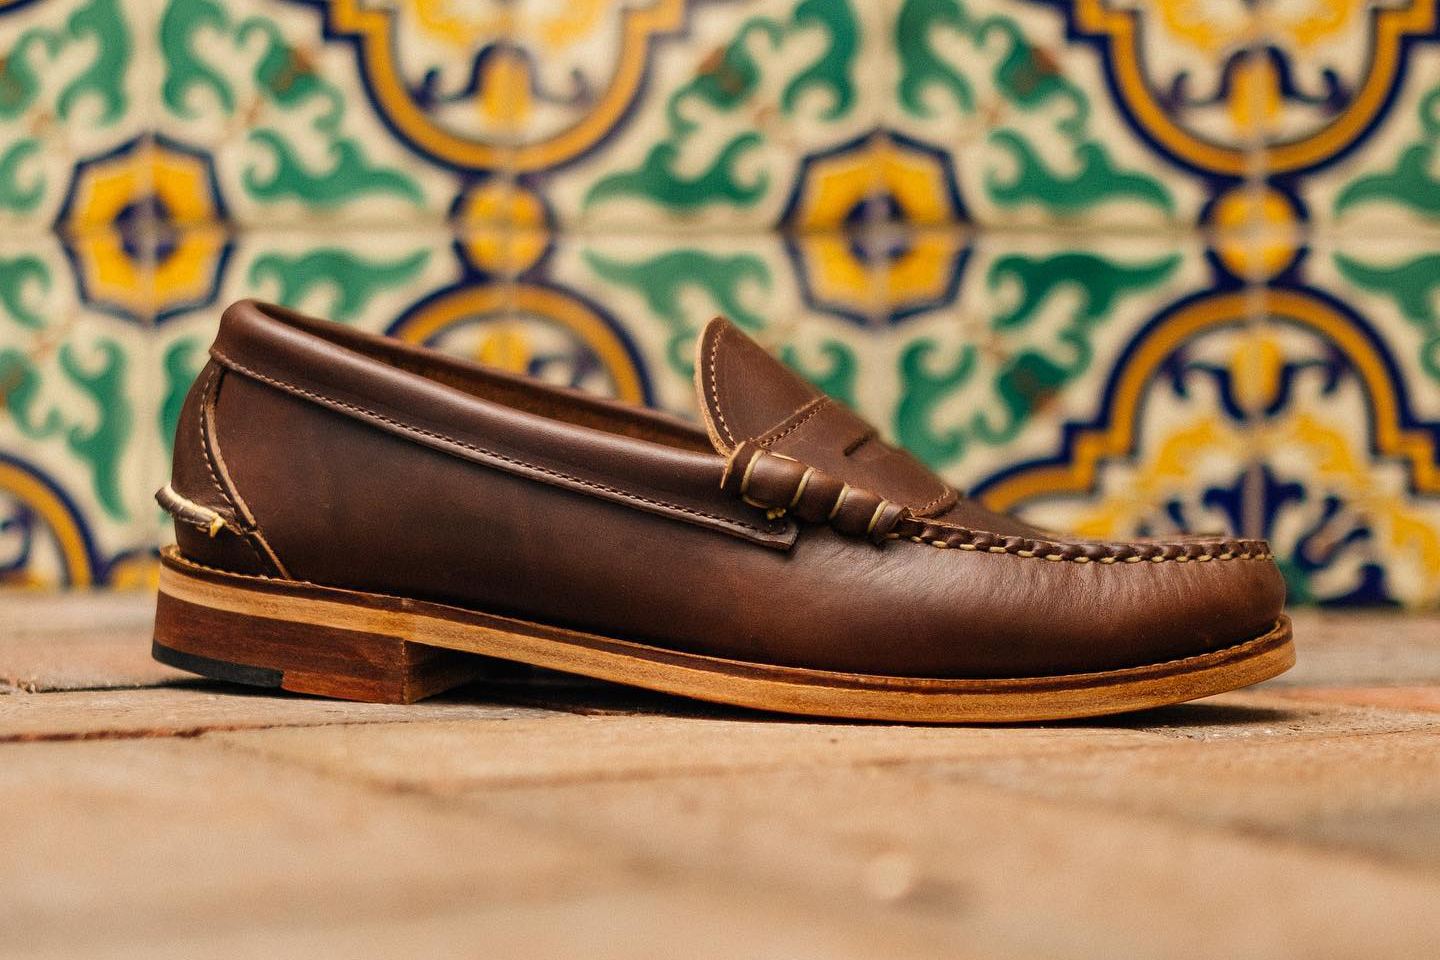 Oak Street Bootmaker Loafer made from Horween Chromexcel leather